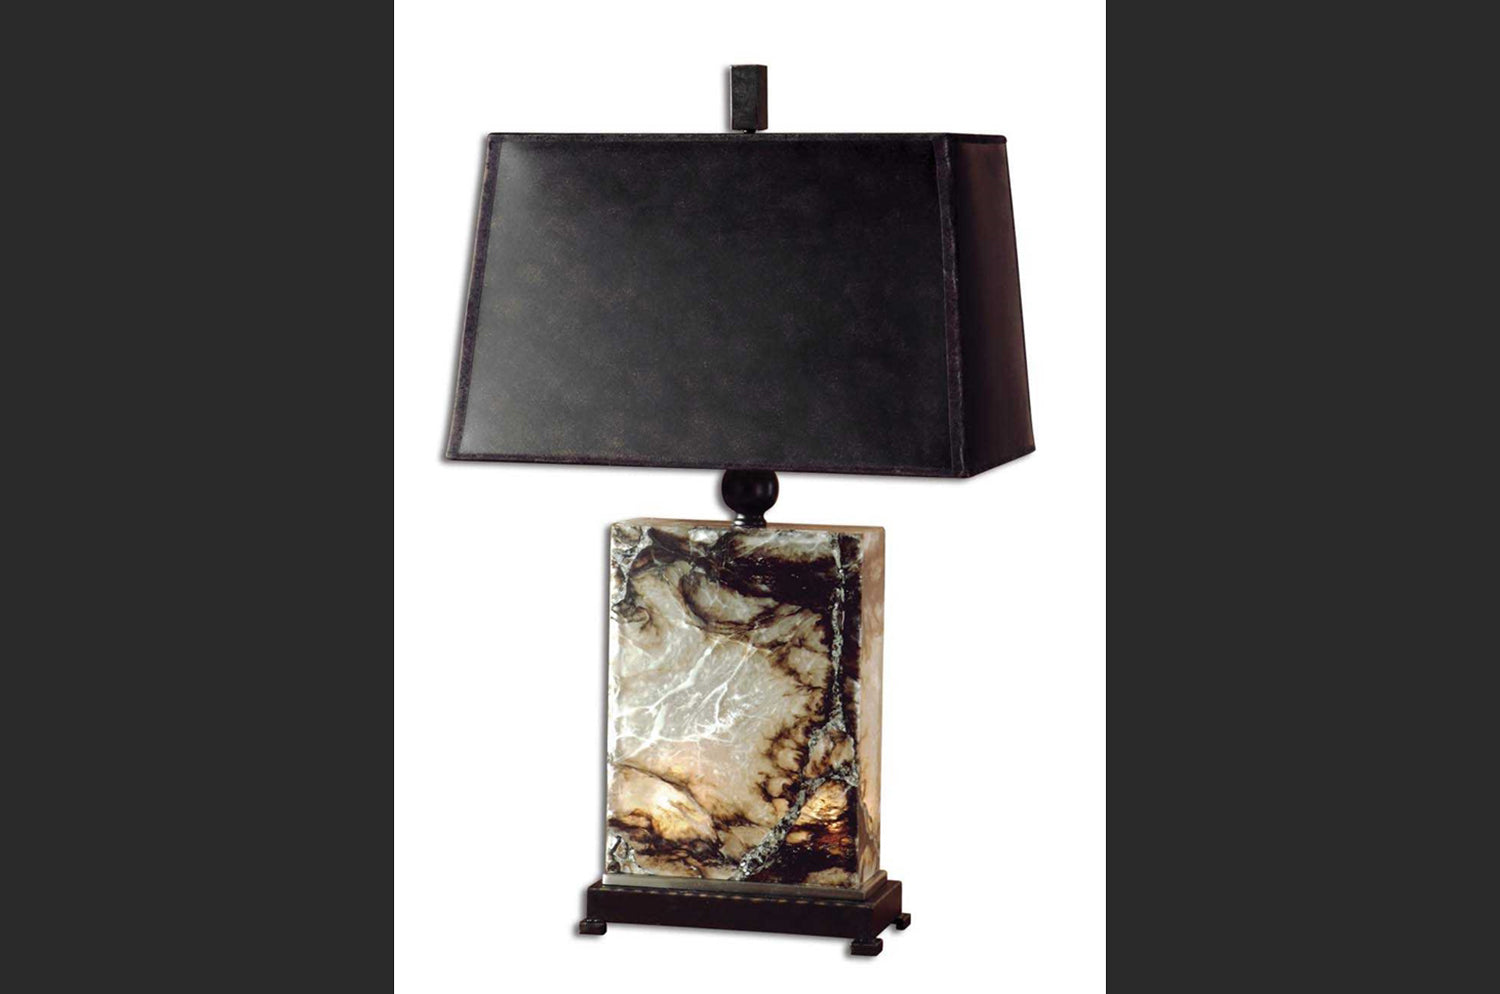 Marius Table Lamp At Solid Austin Home Decor And Furniture Solid Austin Tx